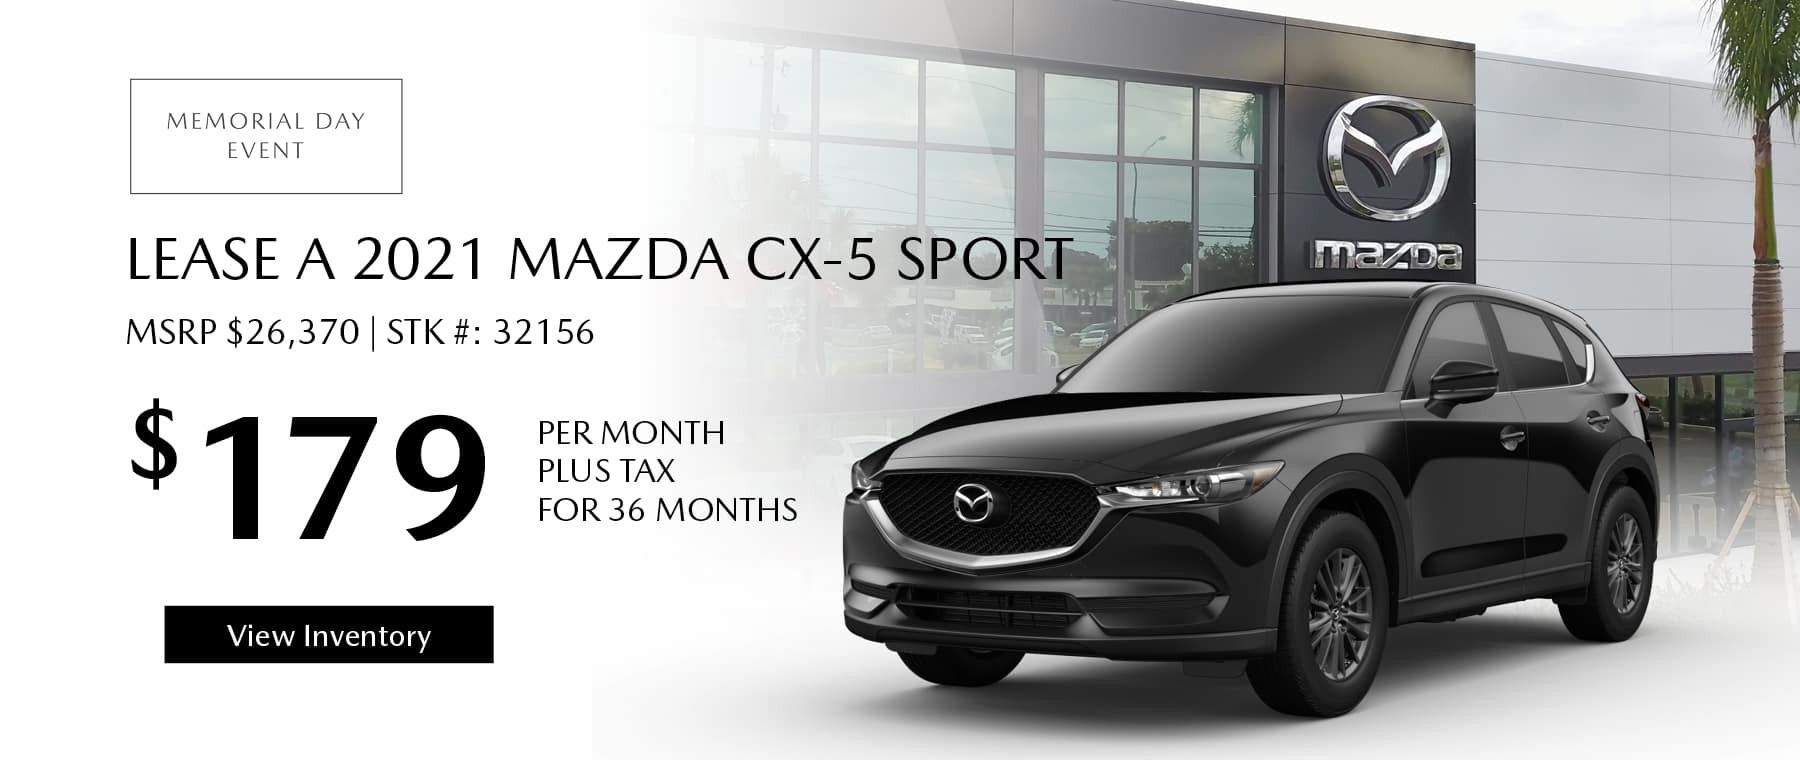 Lease the 2021 Mazda CX-5 for $179 per month, plus tax for 36 months. Click or tap here to view our inventory.